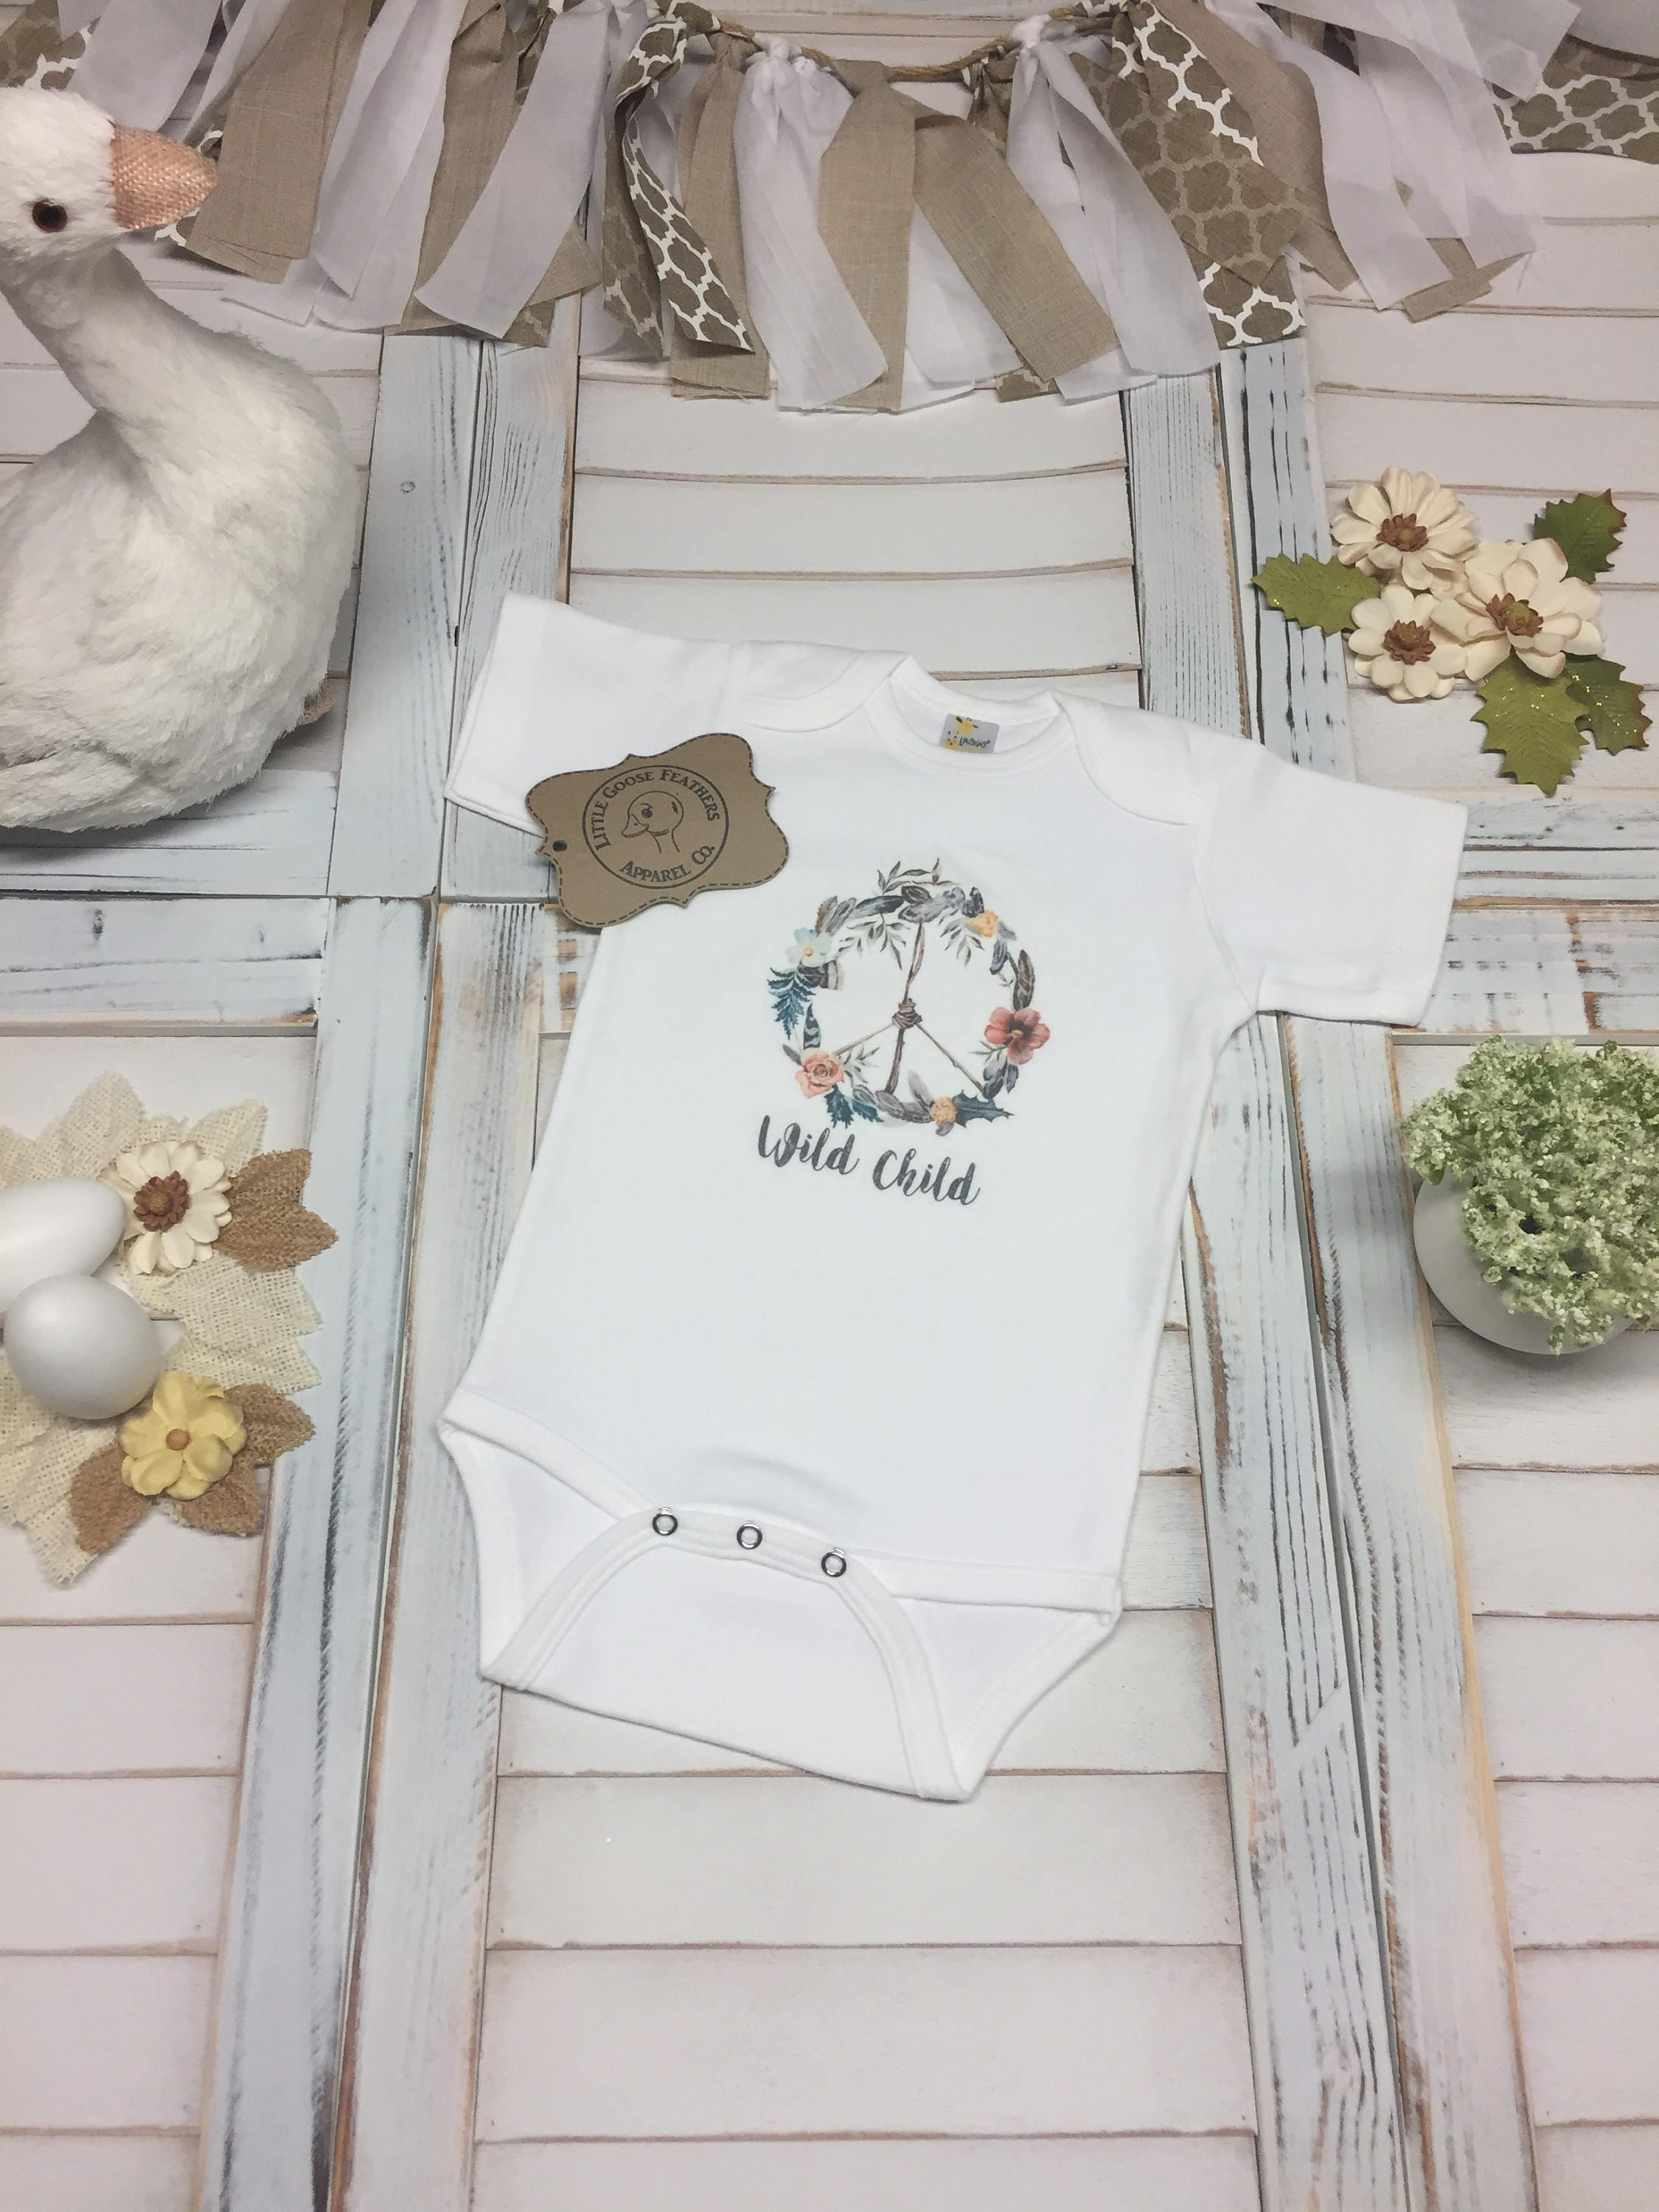 ac6e7cfcf3 Wild Child Text with Boho Style Floral Peace Wreath Design! Cute Girls Gift  Idea! Bodysuit(Onesie)